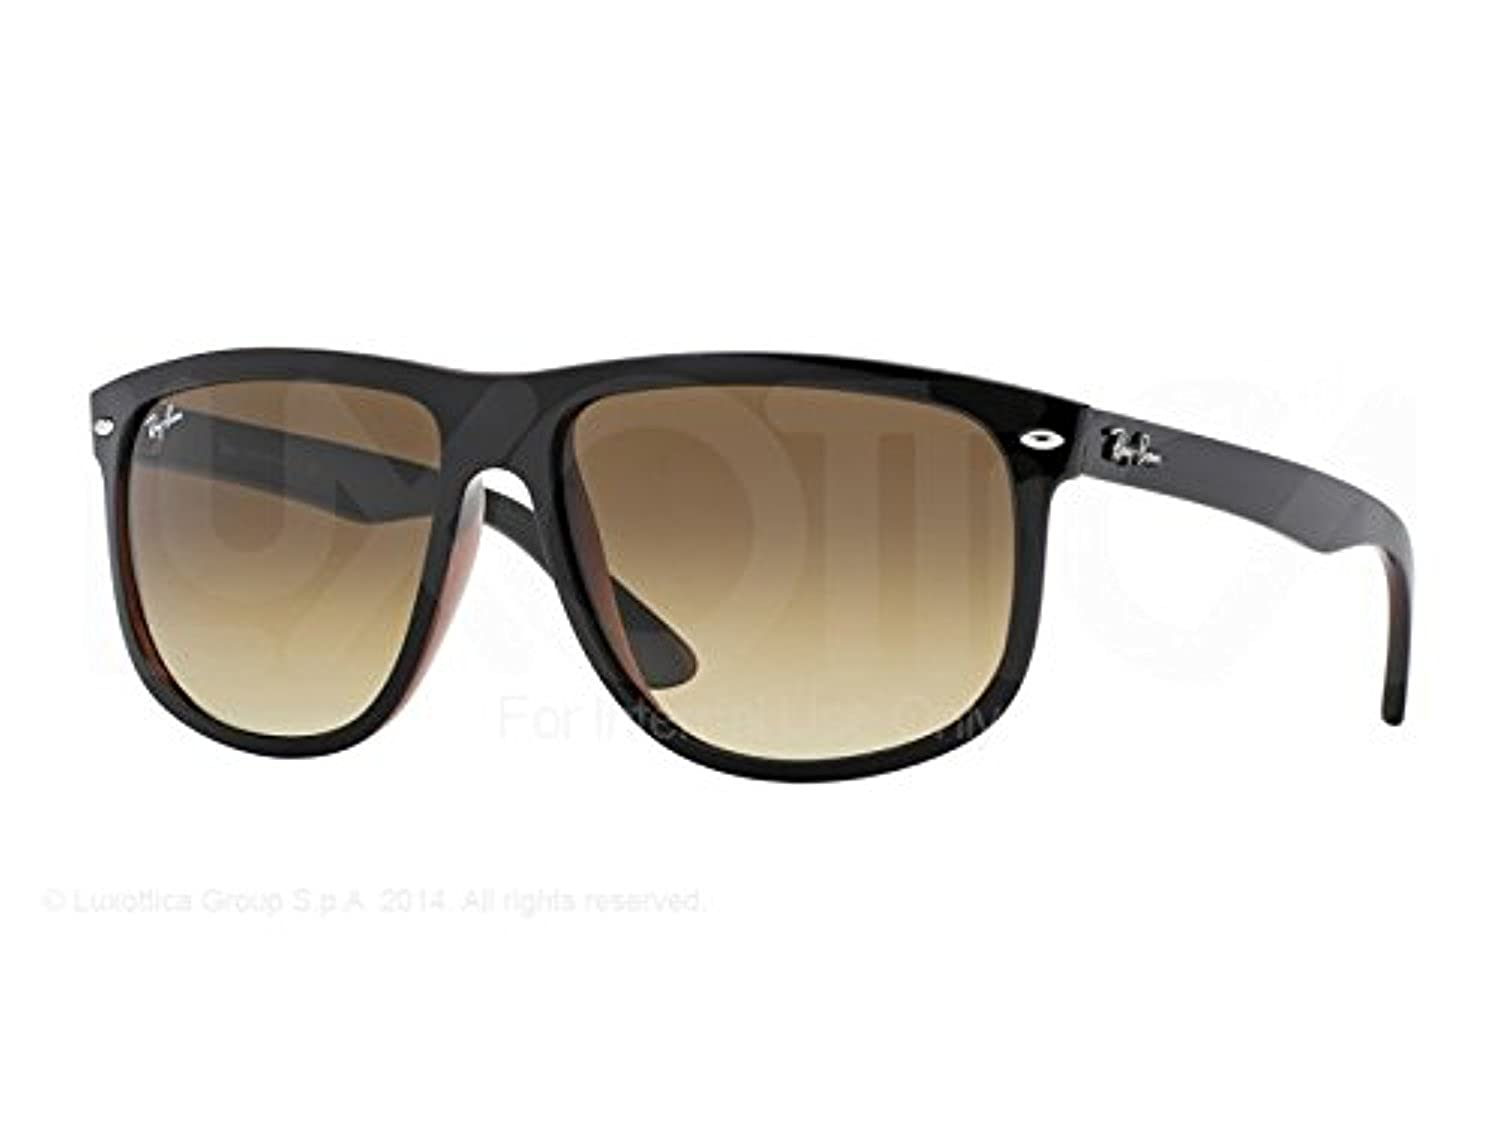 8af99cc975 Oakley Sunglasses Cheap Military « Heritage Malta